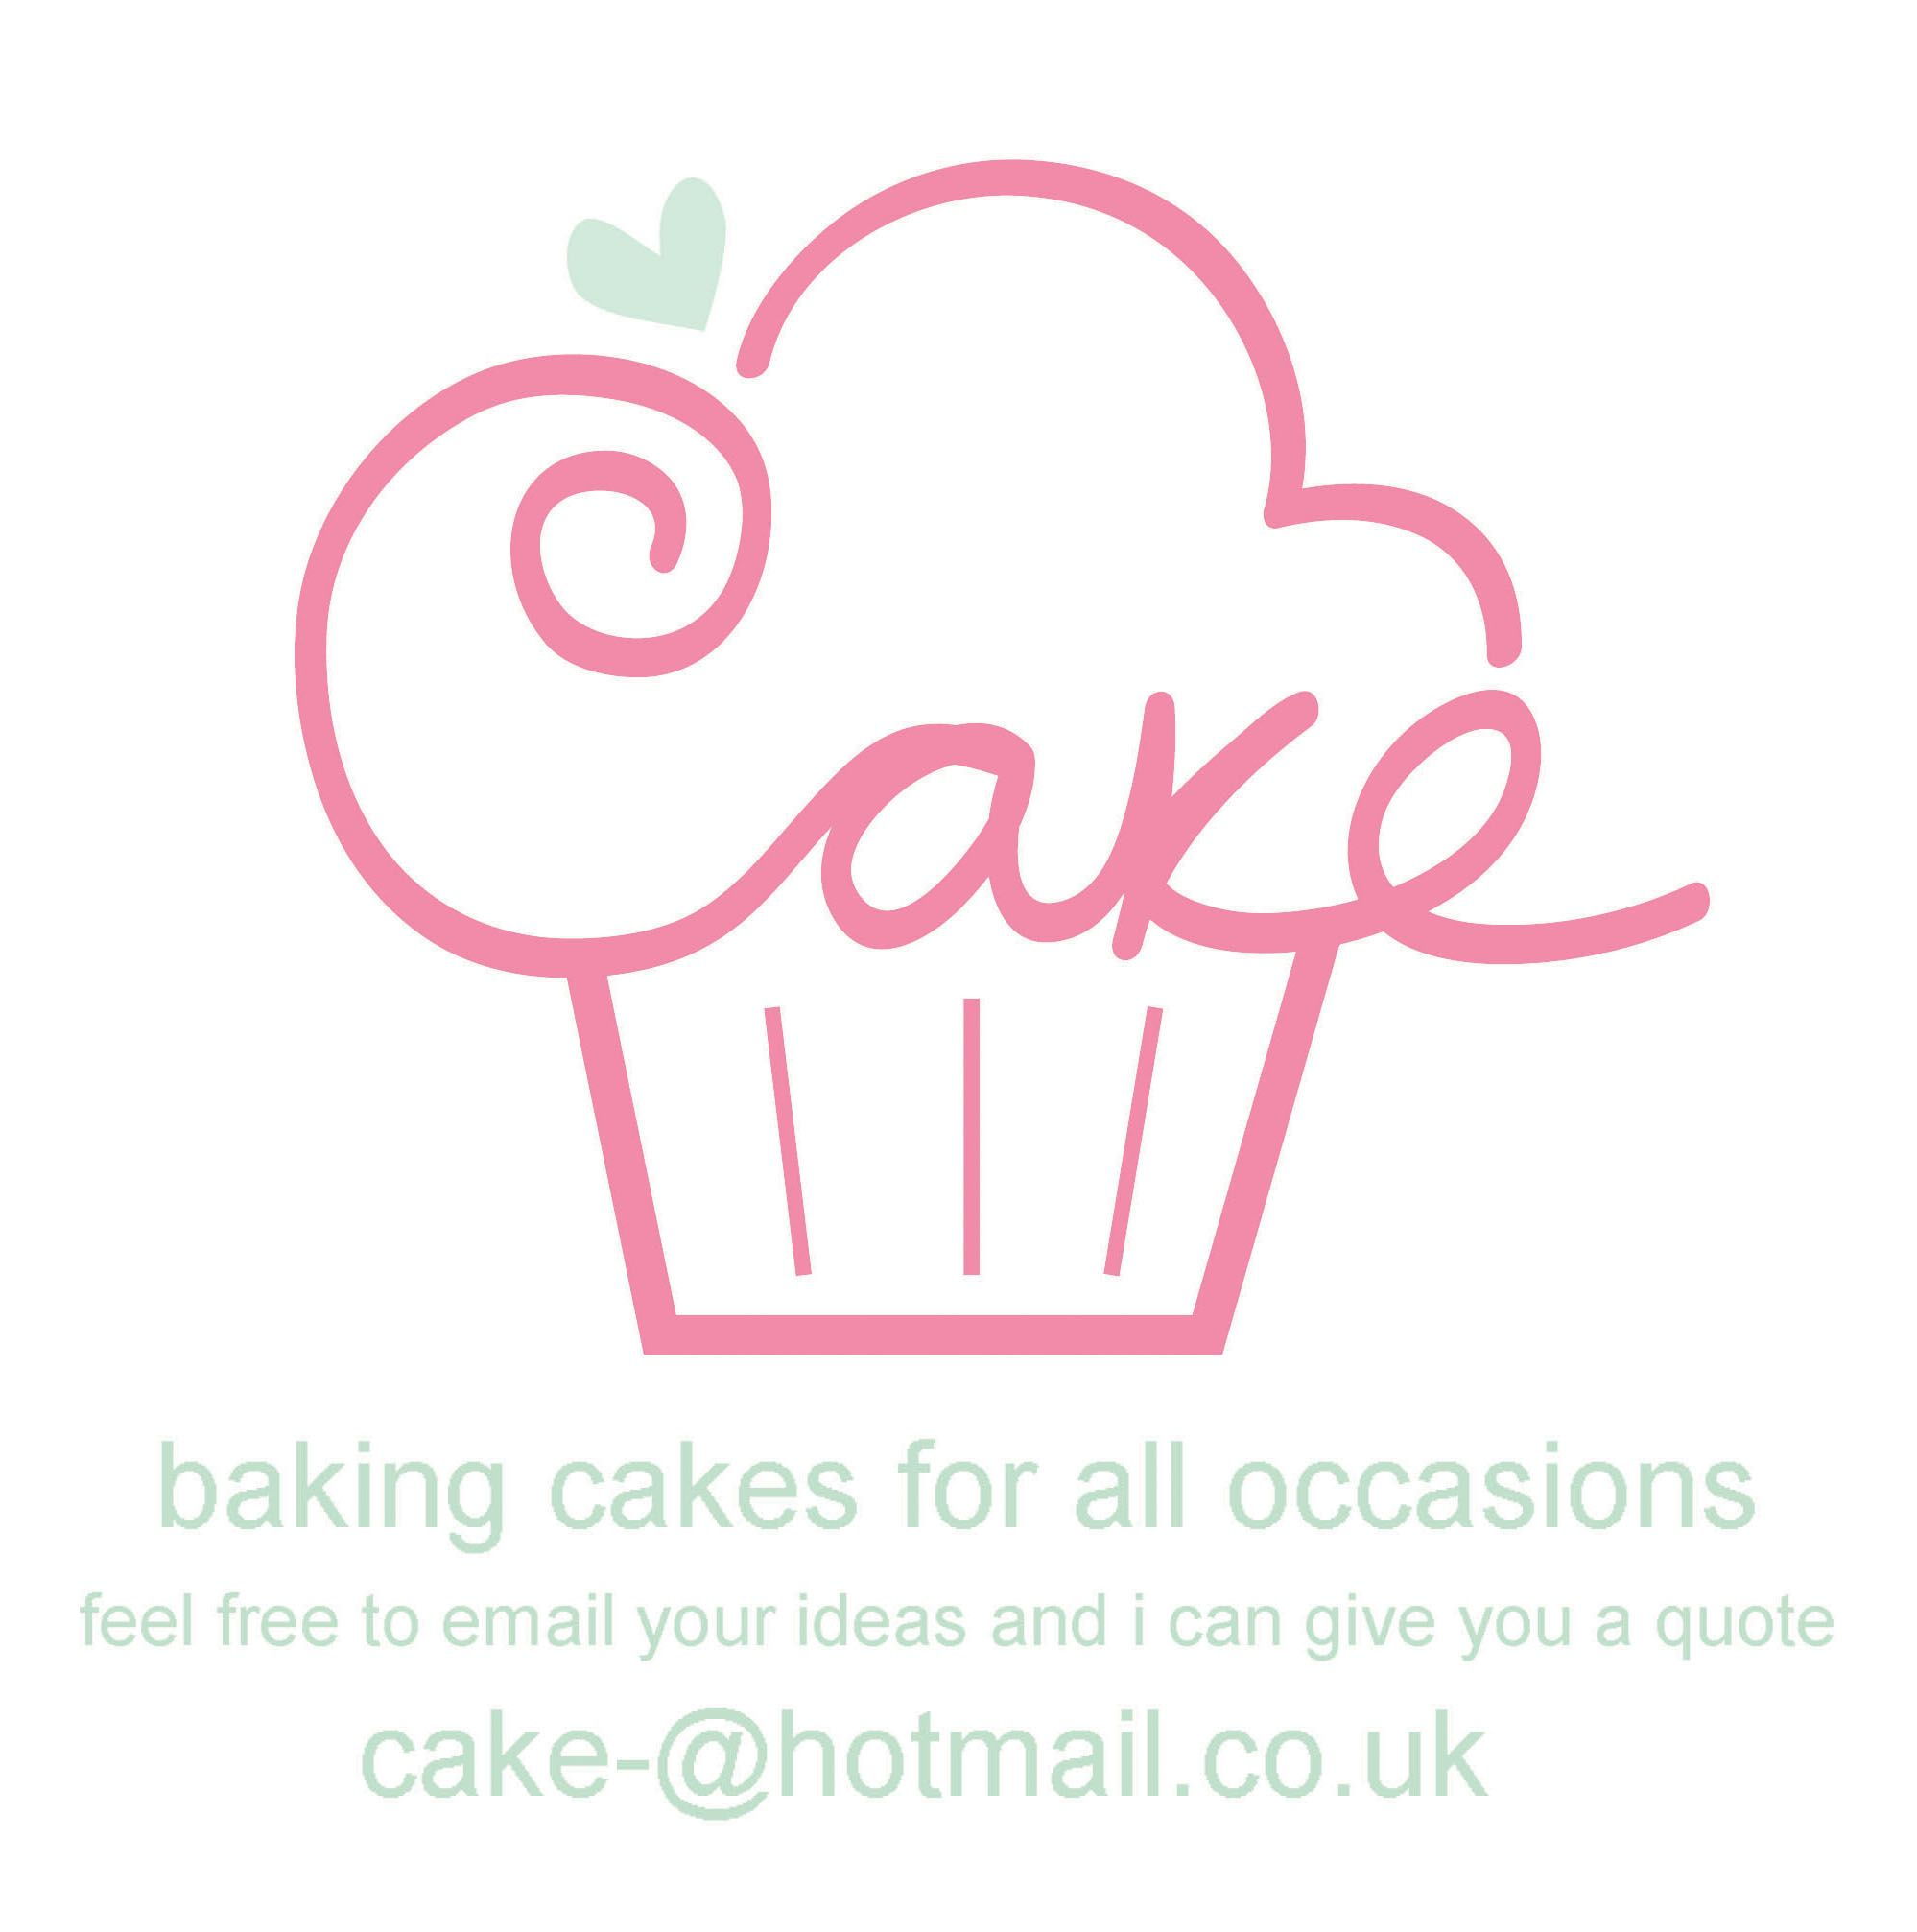 Good Free Free Business Logos Designs | New Cake Logo: From The Beginning |  Putting The U0027iu0027 In U0027designu0027